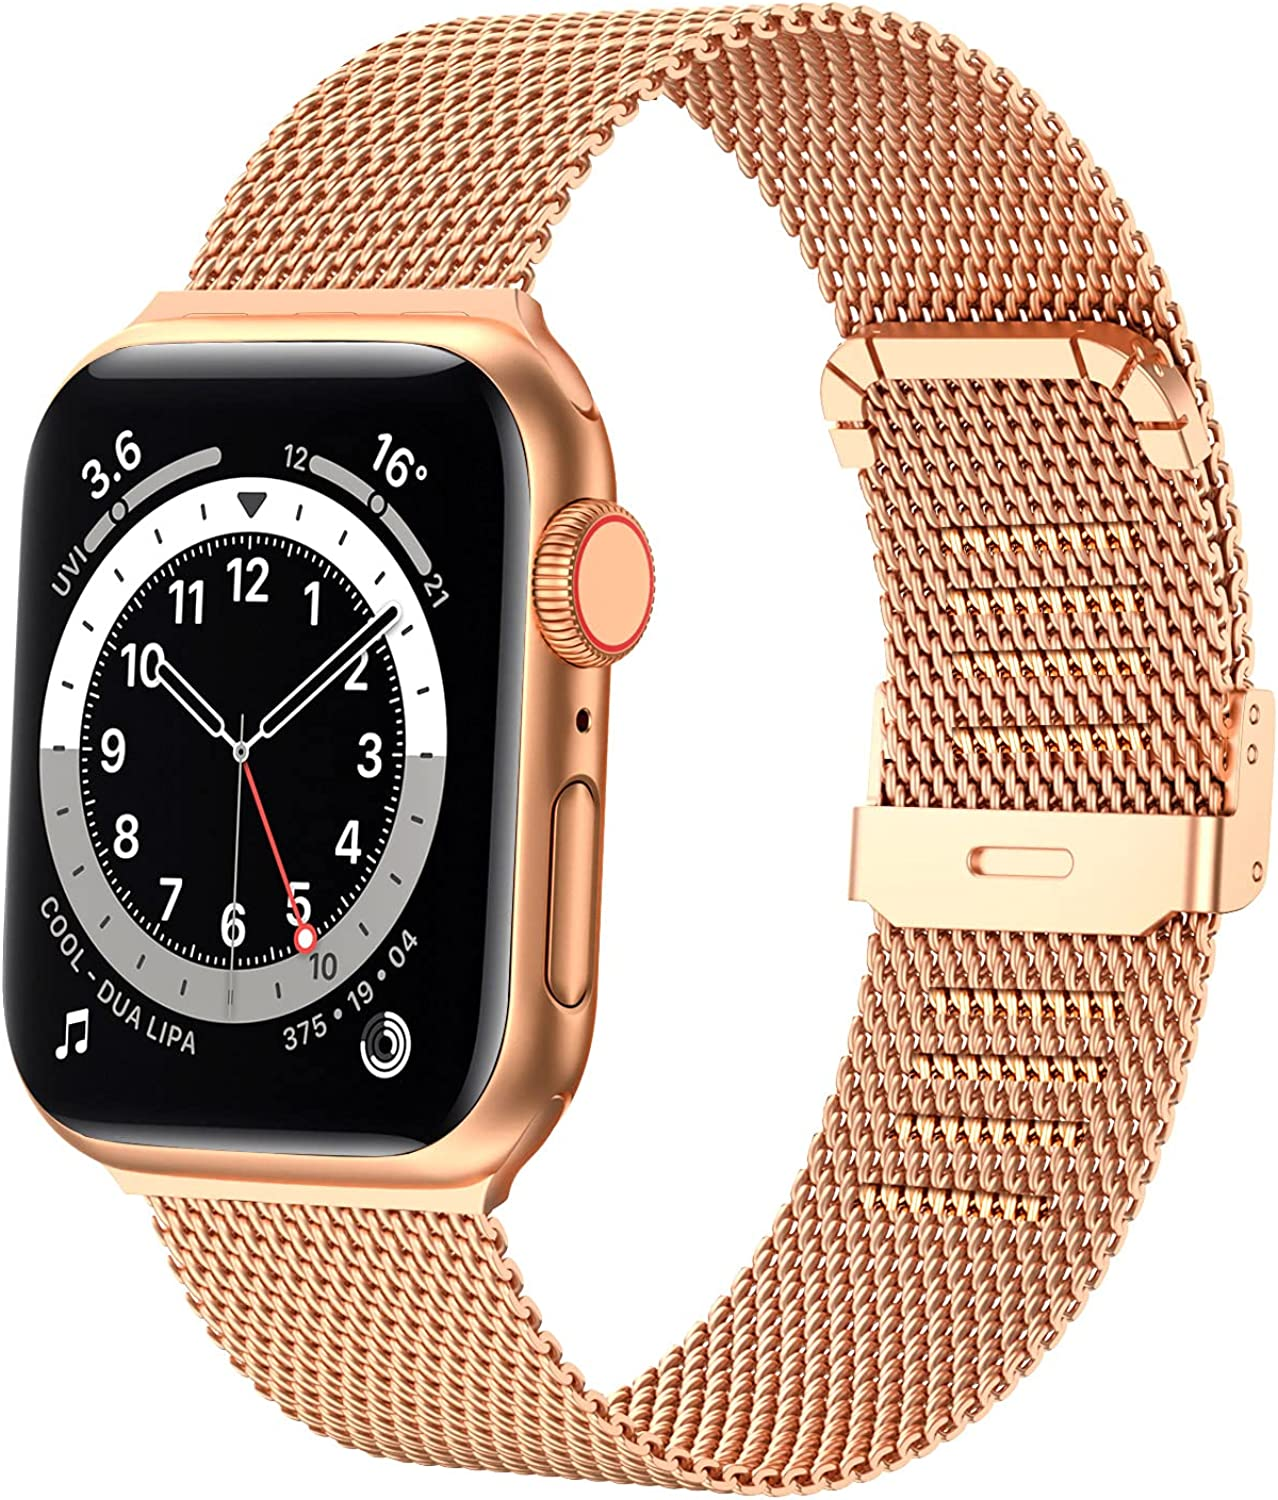 Dsytom Bands Compatible with Apple Watch Band 38mm 40mm 42mm 44mm, Stainless Steel Milanese Mesh Loop Band Metal Strap Replacement Compatible for iwatch Series 6 /5 /4/ 3 /2 /1/ SE Women Men -Multi Color